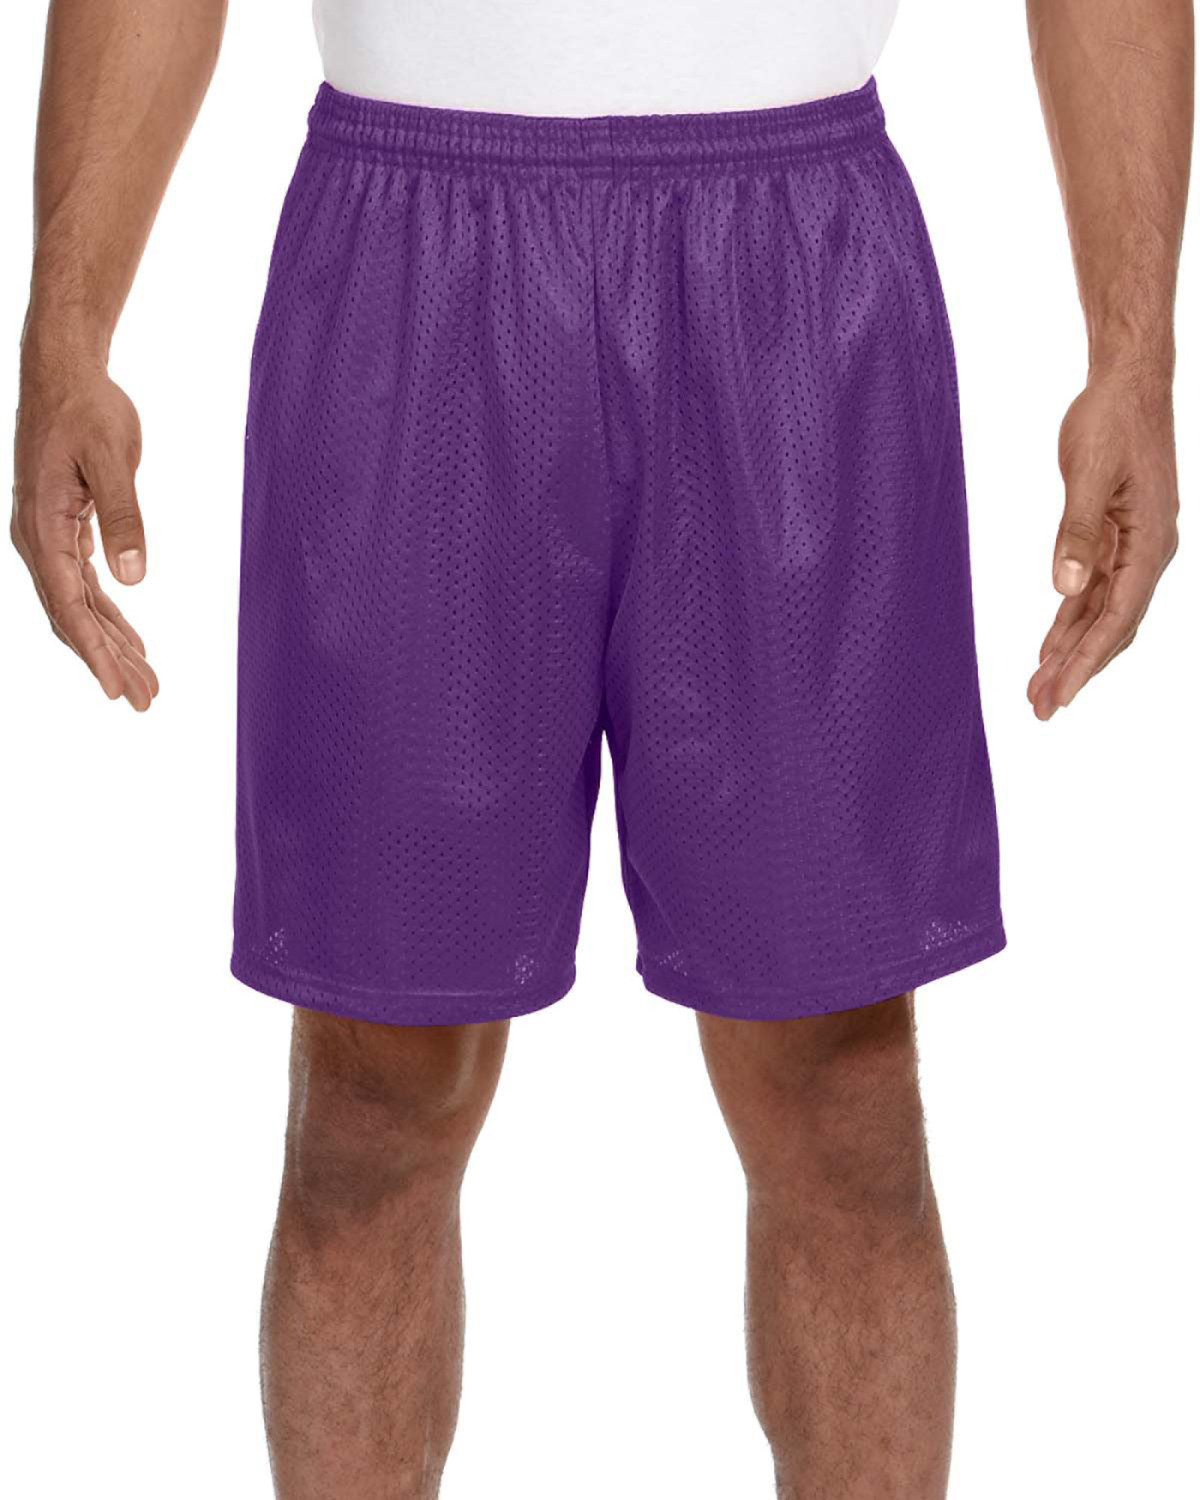 A4 Adult Seven Inch Inseam Mesh Short PURPLE